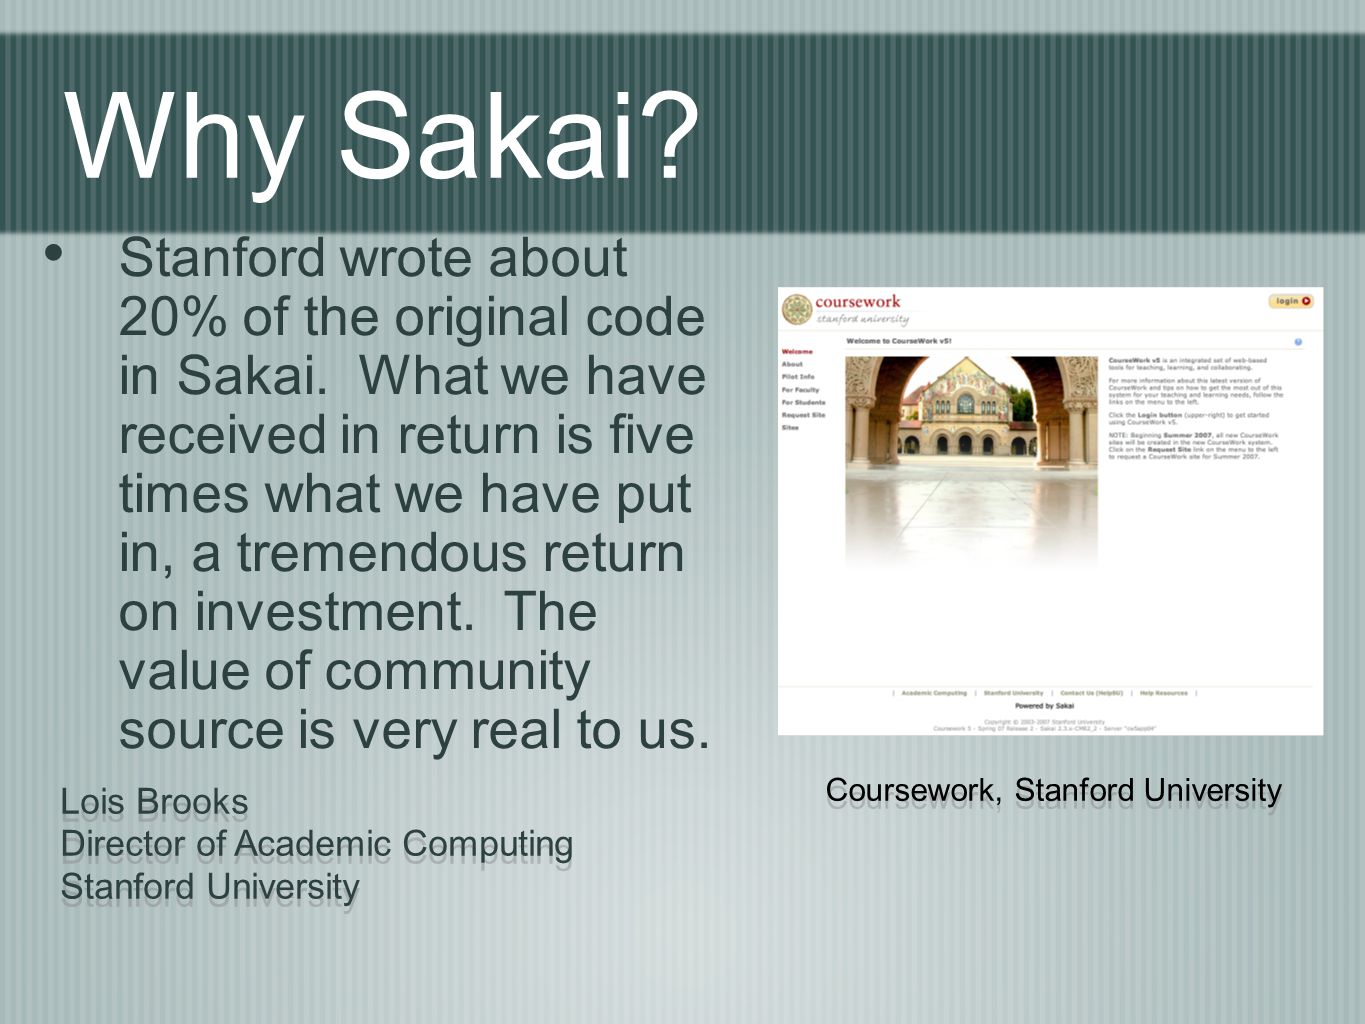 Why Sakai. Stanford wrote about 20% of the original code in Sakai.